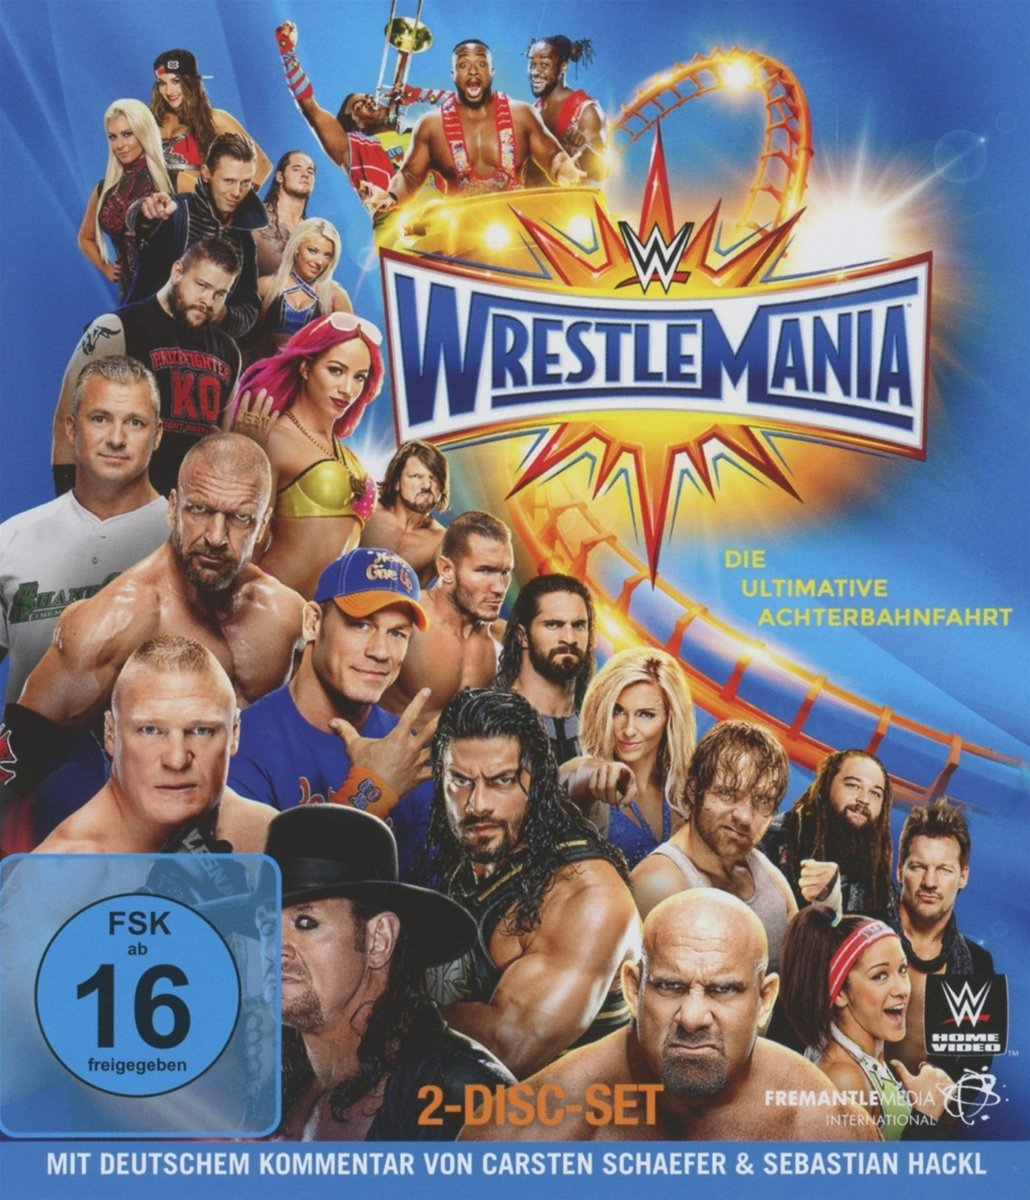 Wrestlemania 33 [Blu-ray]: Amazon.de: DVD & Blu-ray